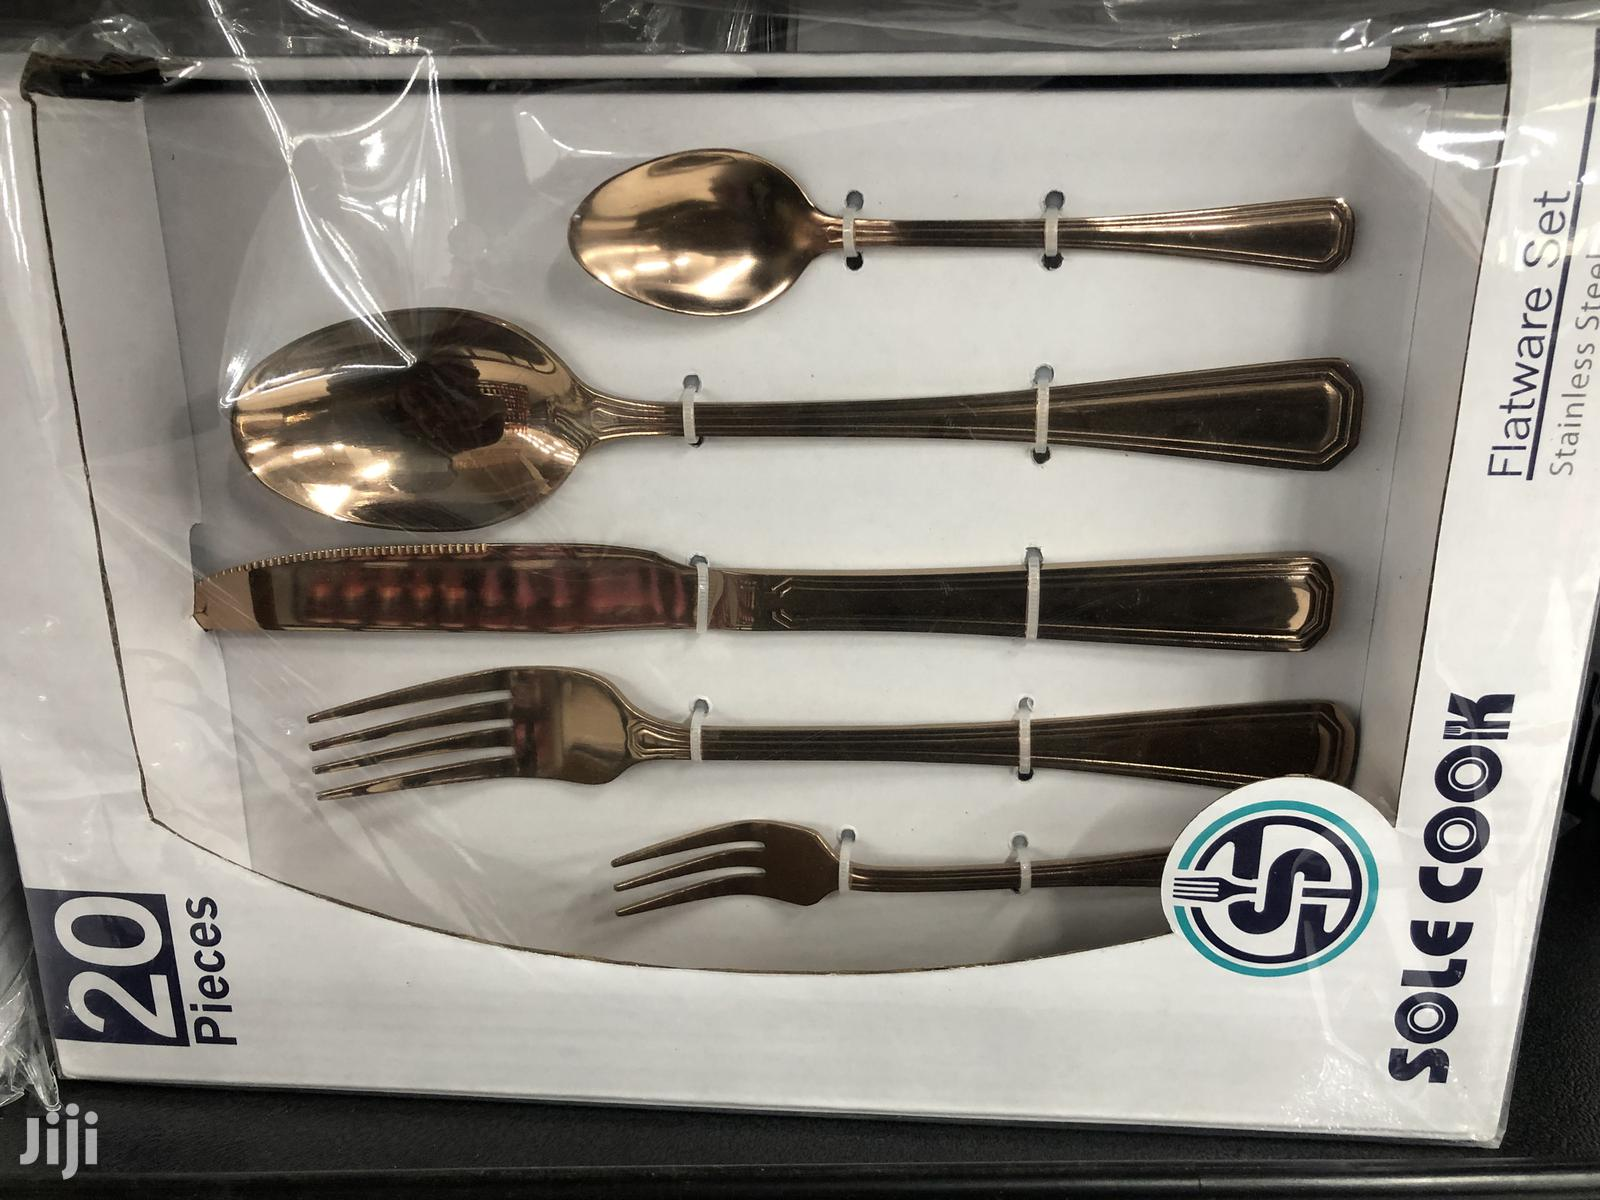 Cutlery Sets- Gold/Bronze Plated | Kitchen & Dining for sale in Accra Metropolitan, Greater Accra, Ghana